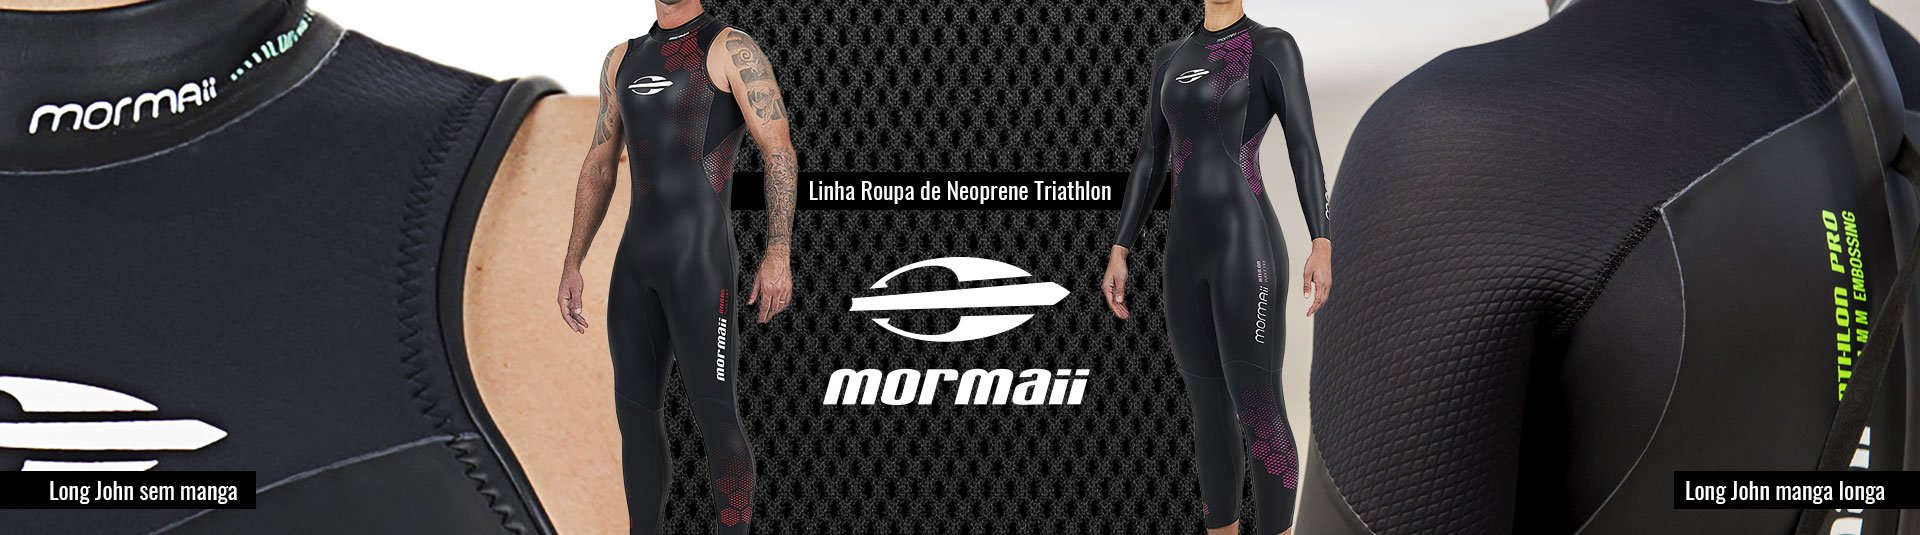 neoprene-mormaii-24out-HOME